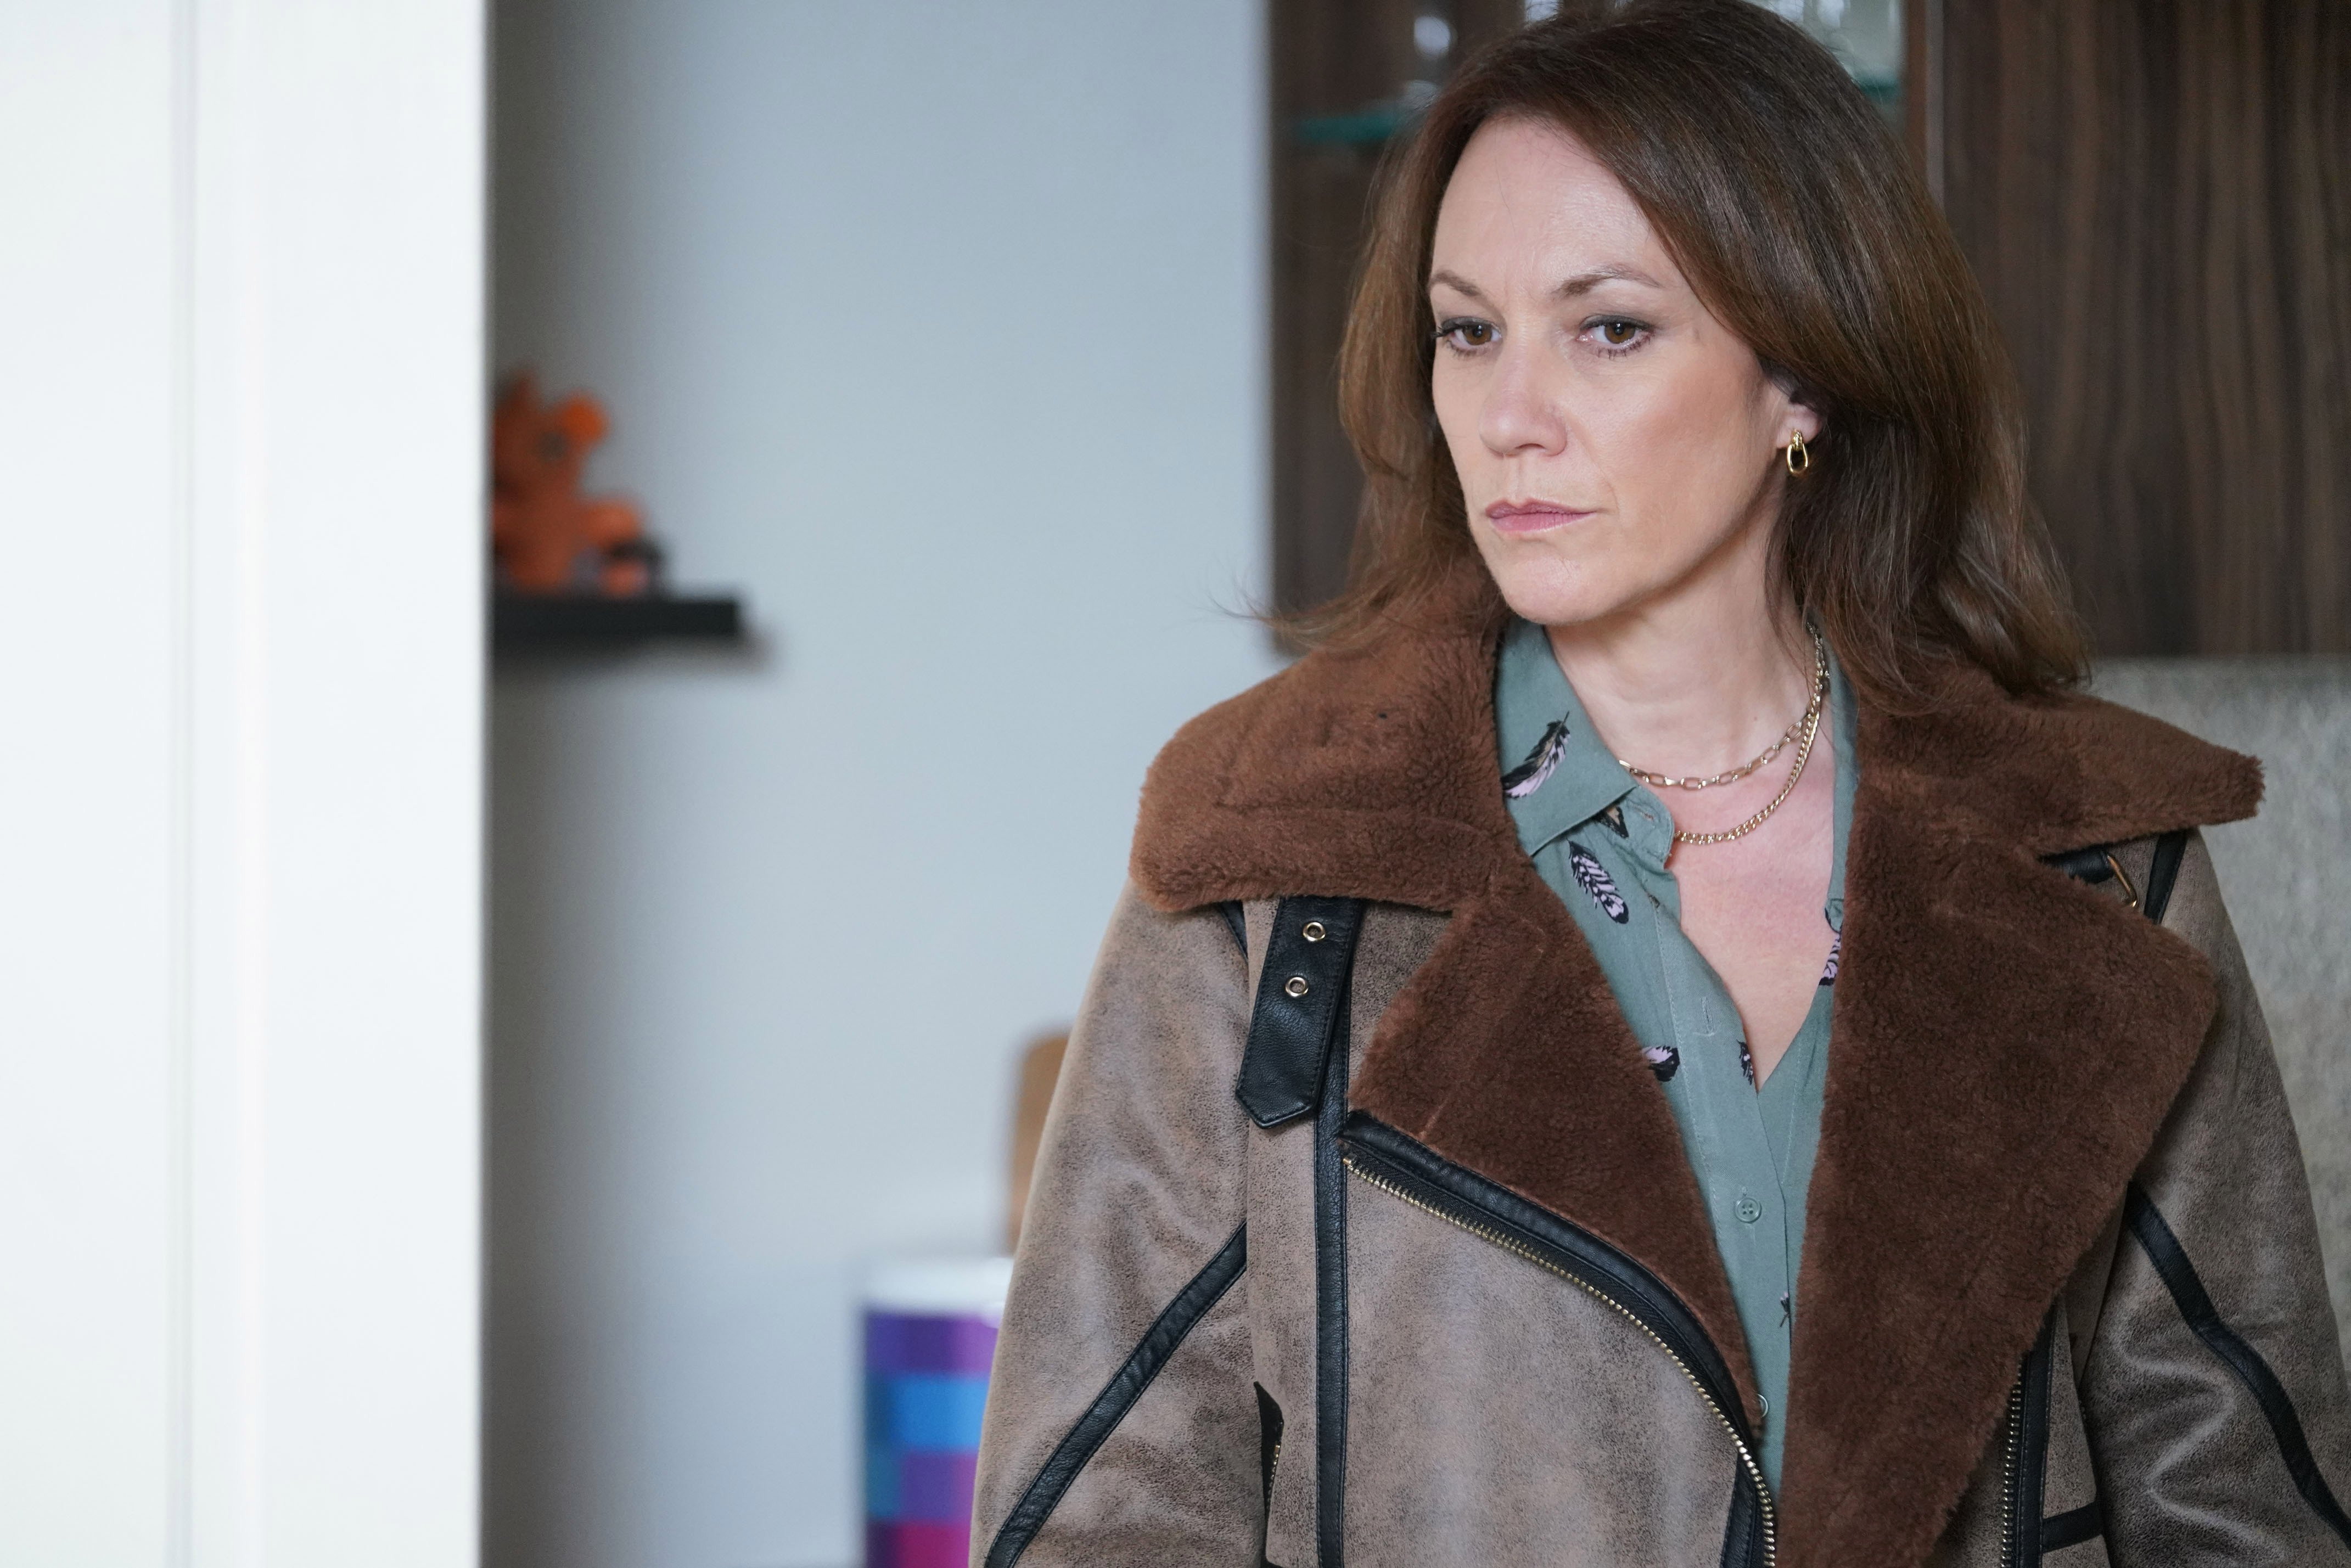 Rainie Branning devastated as she discovers husband Max is seeing another woman